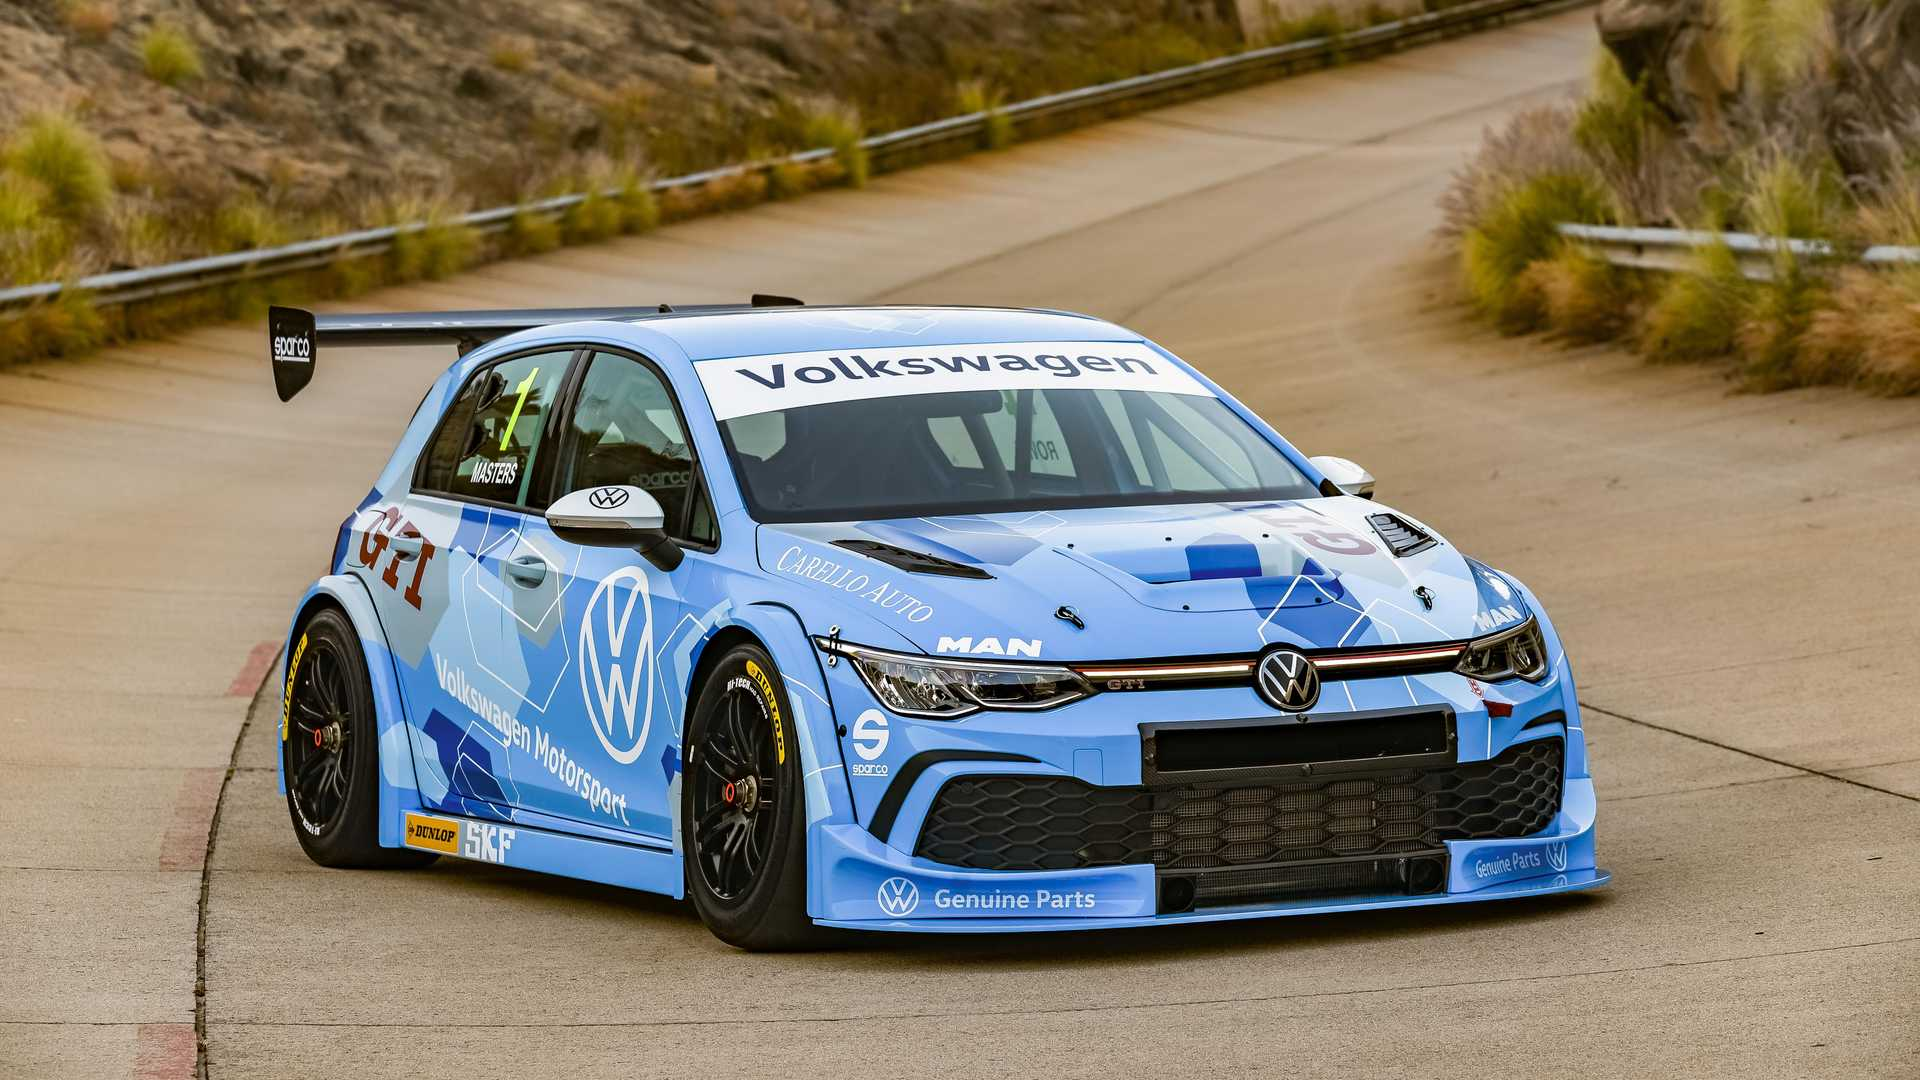 Volkswagen Golf 8 GTI GTC Race Car Debuts For South Africa Series - Motor1